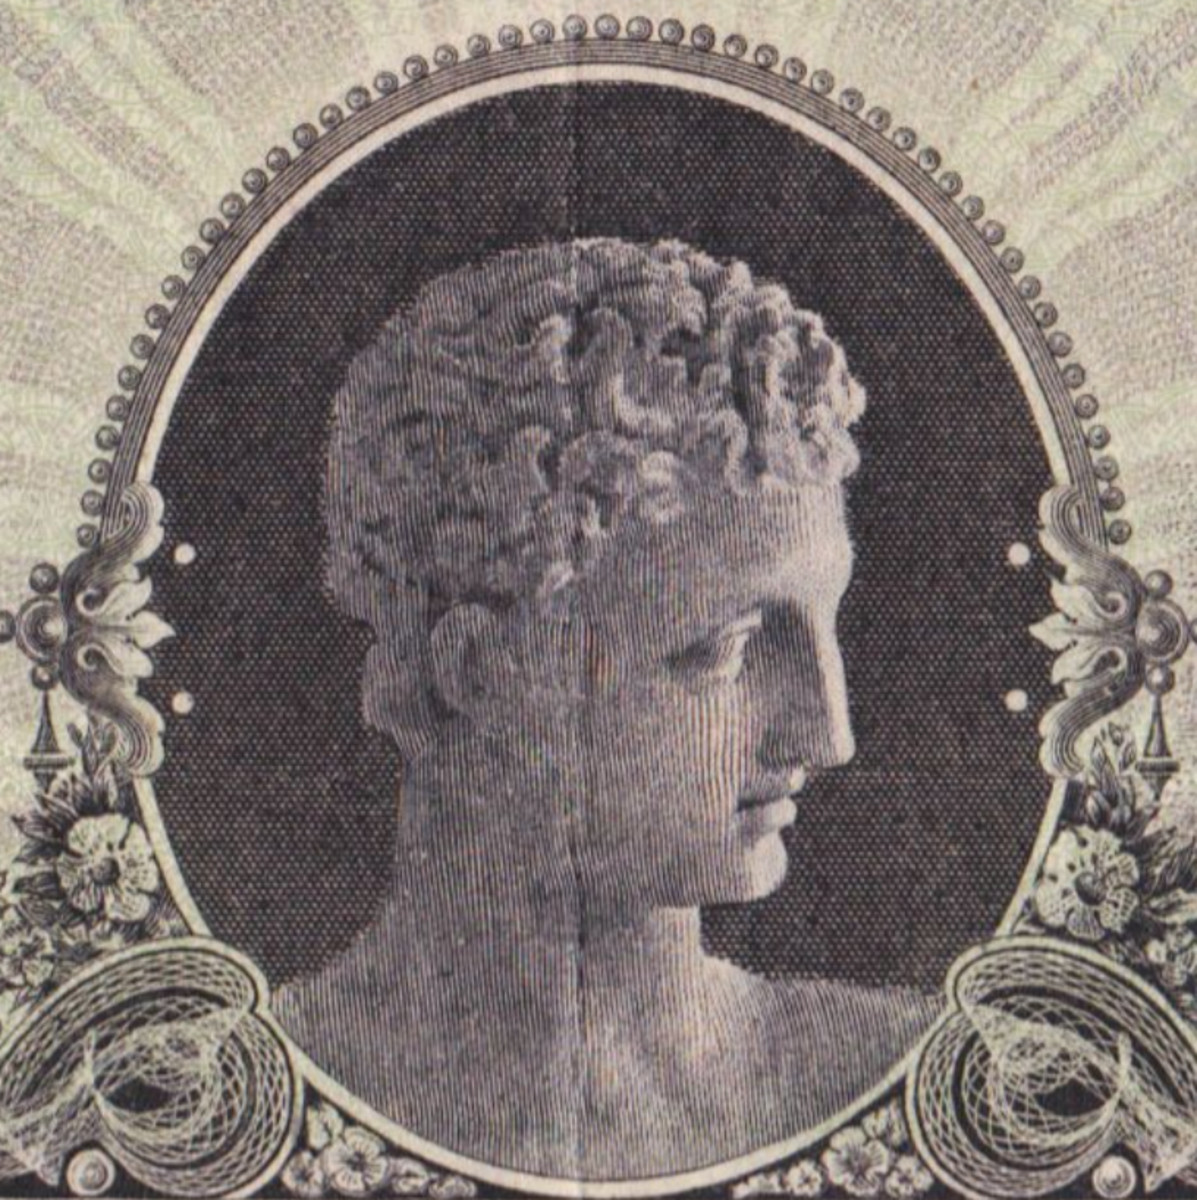 Interestingly, Waterlow and the American Bank Note Company used the same portrait for various issues of the National Bank of Greece in the late 19th/early 20th century.